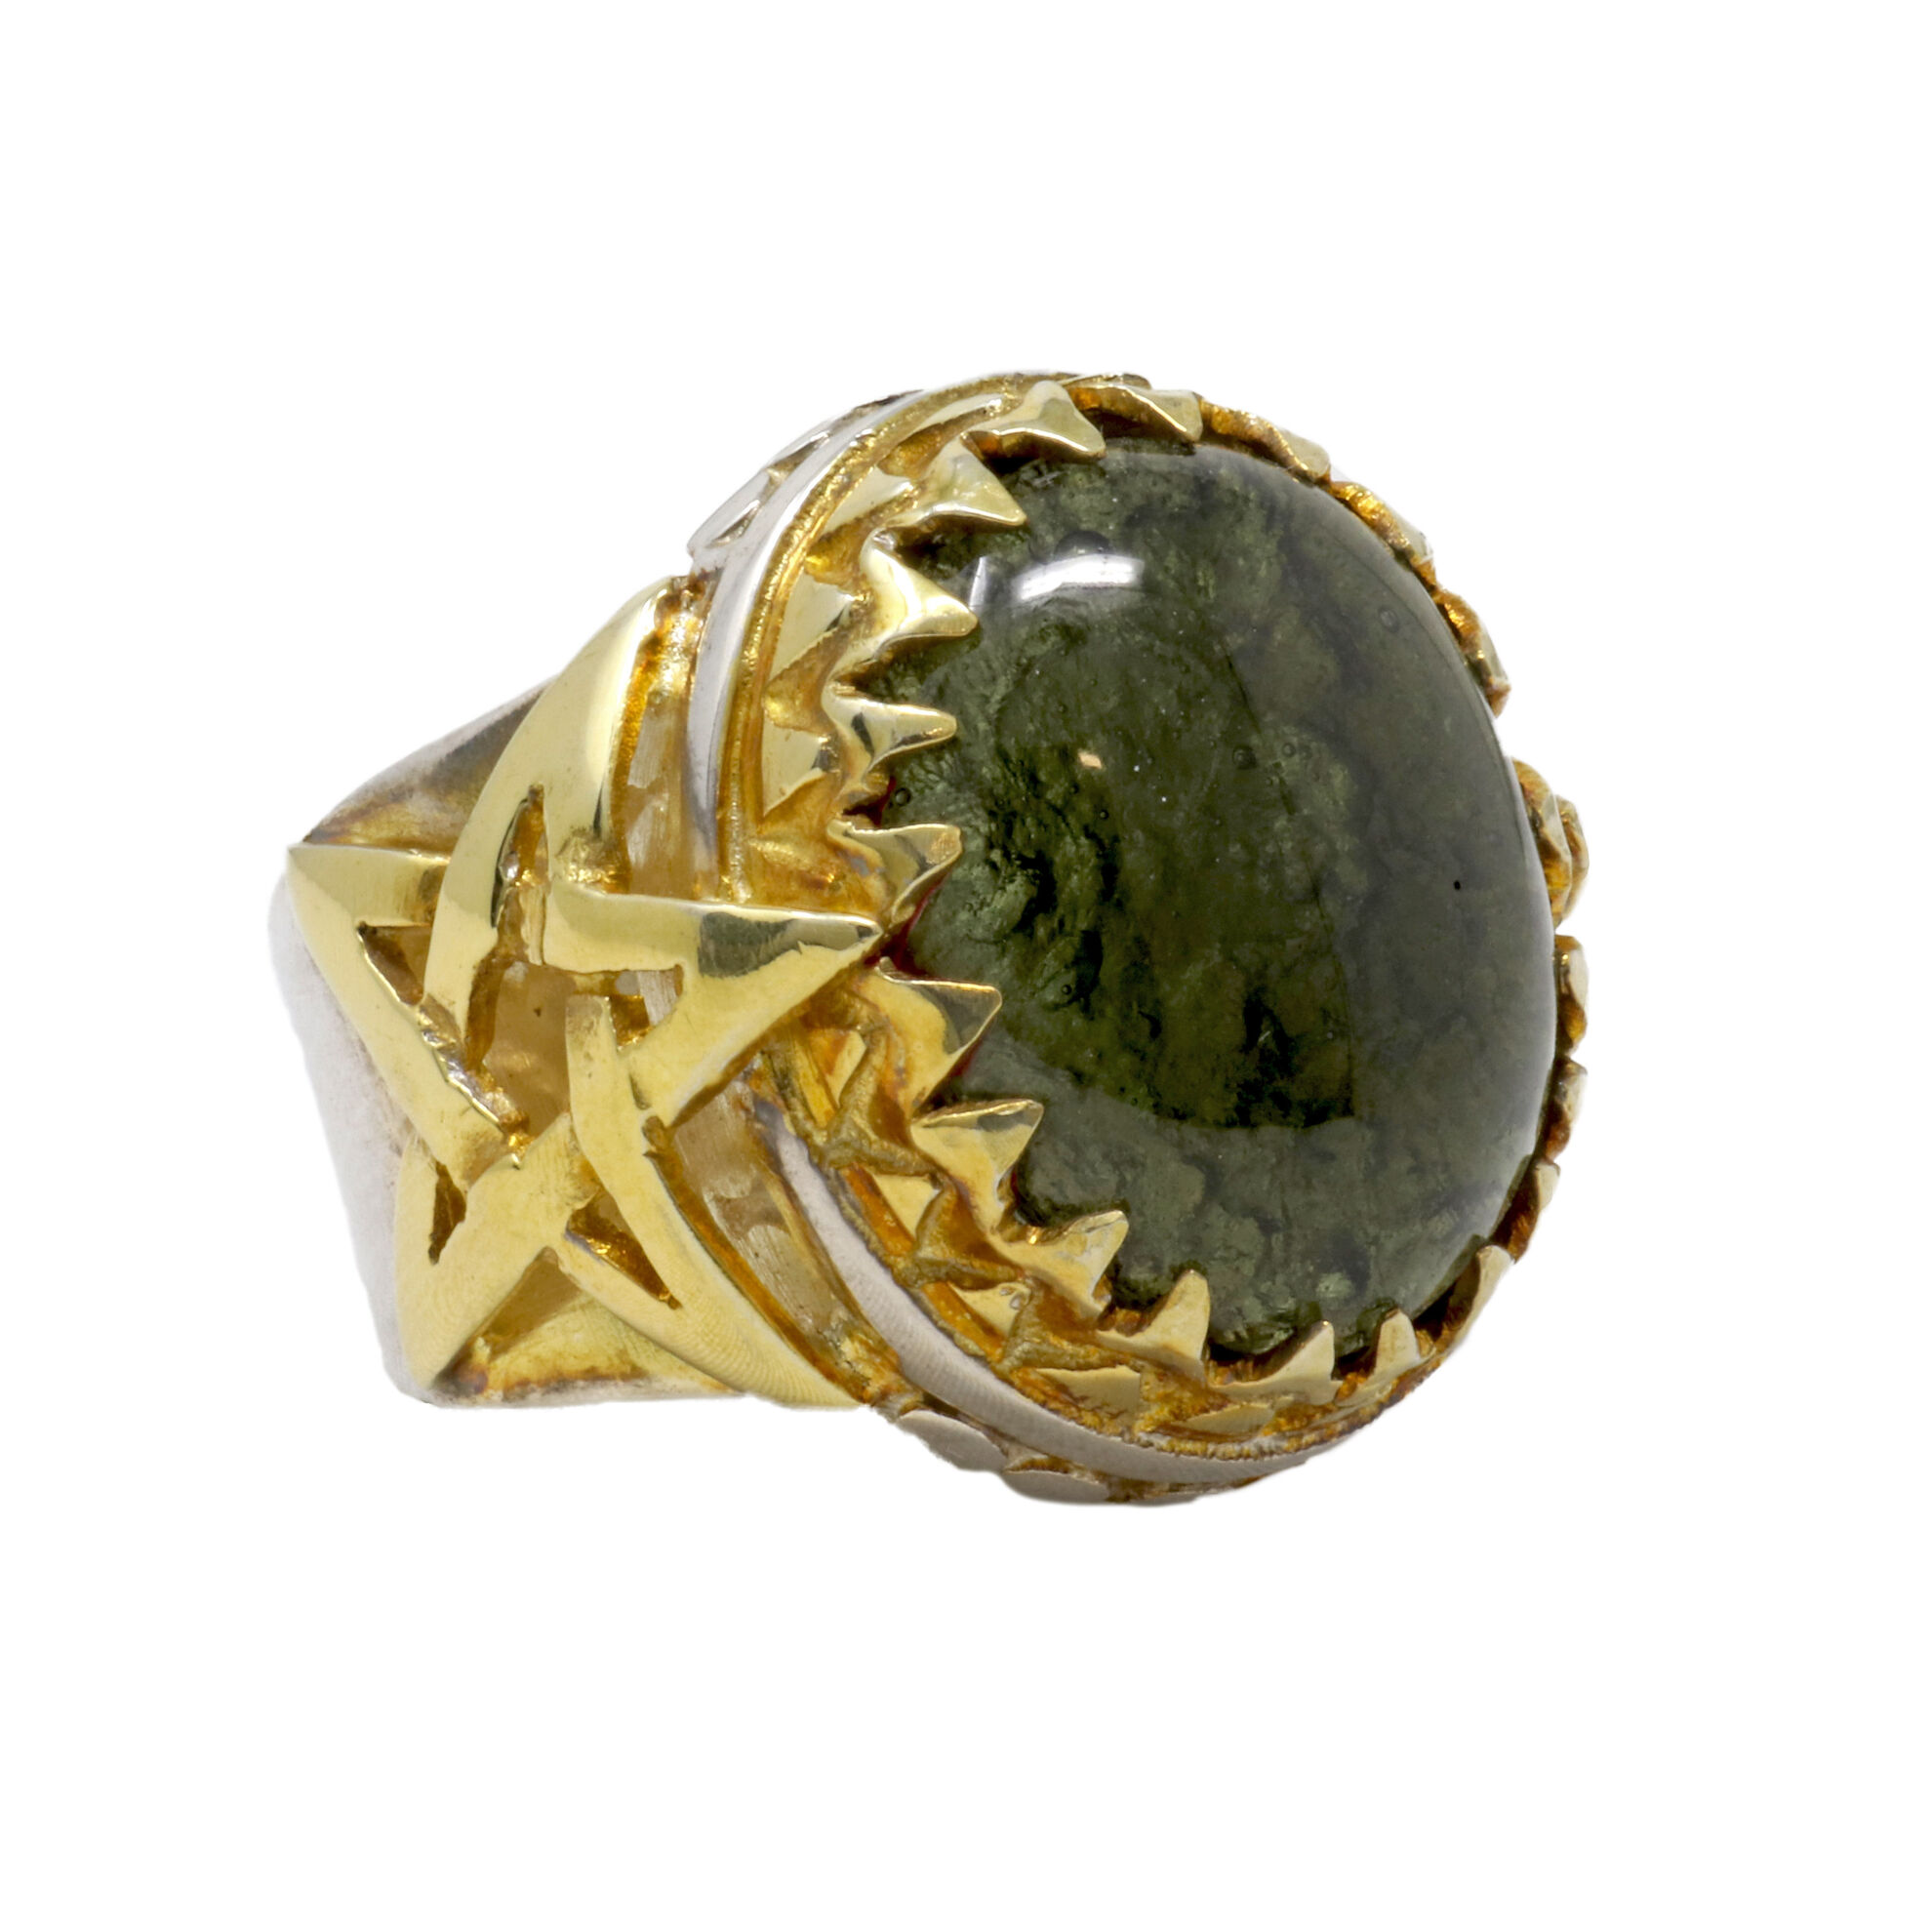 Moldavite Ring Cabochon In Star Band With 22K Overlay Size 9